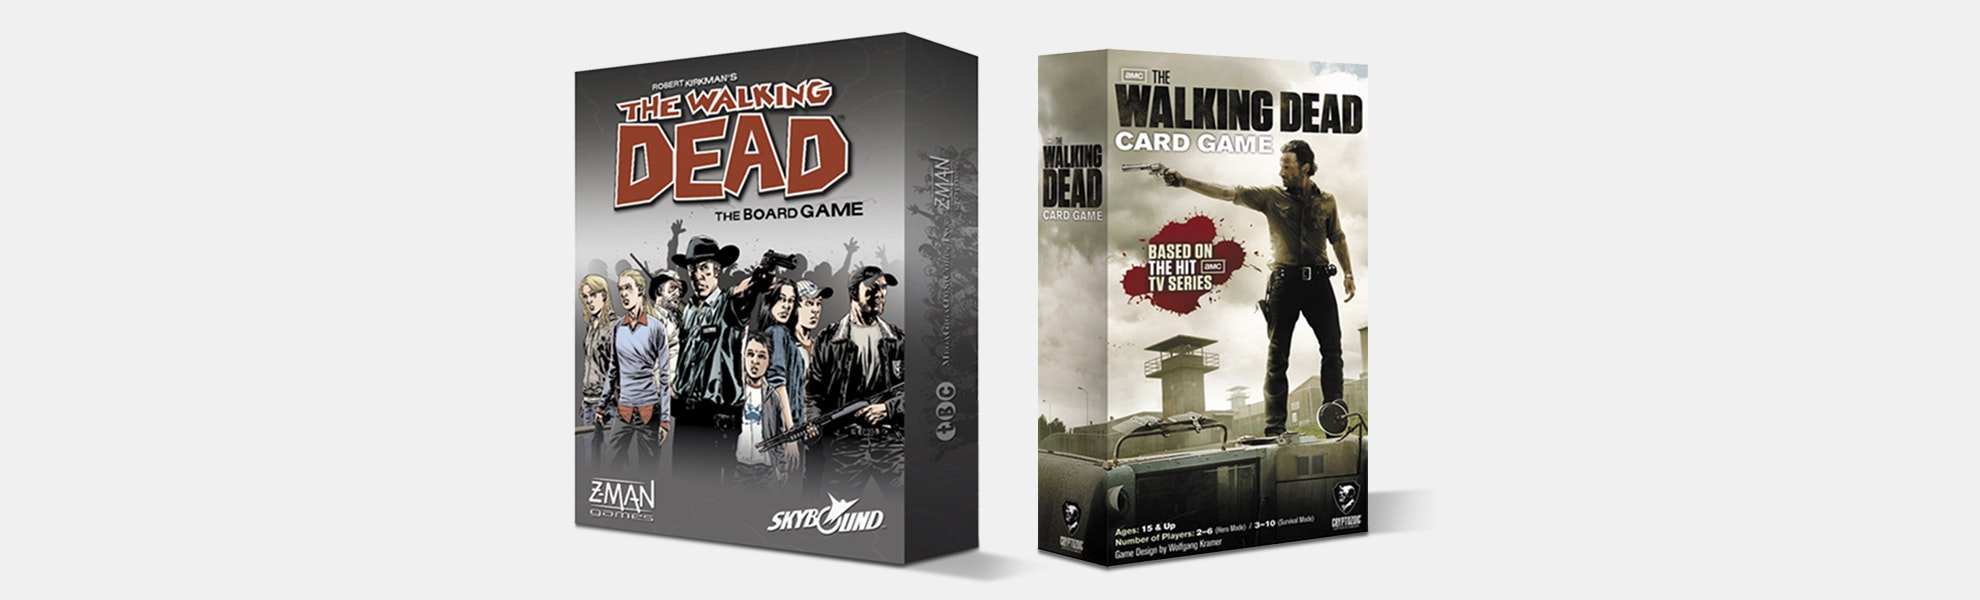 The Walking Dead Game Bundle